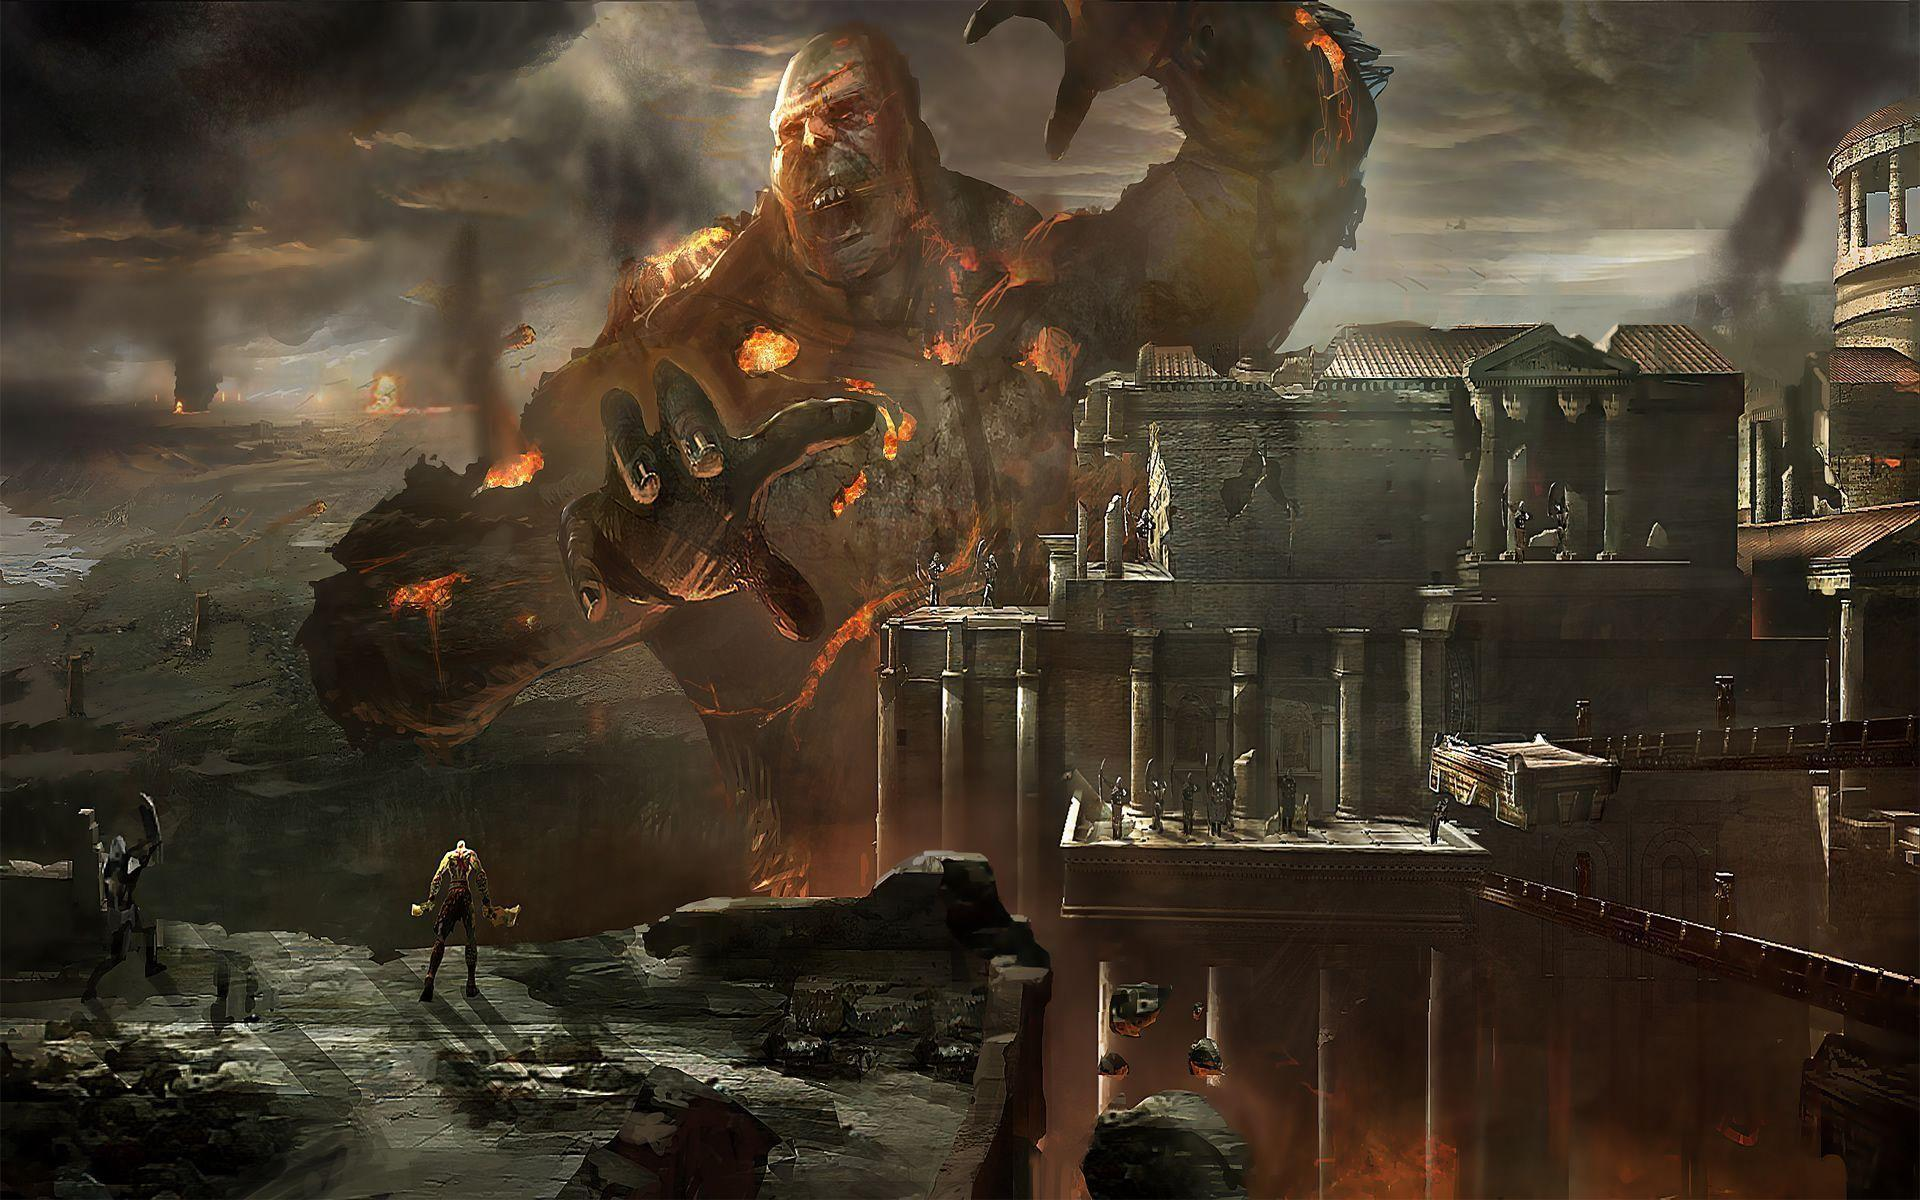 God Of War Game Wallpapers - HD Game Wallpapers